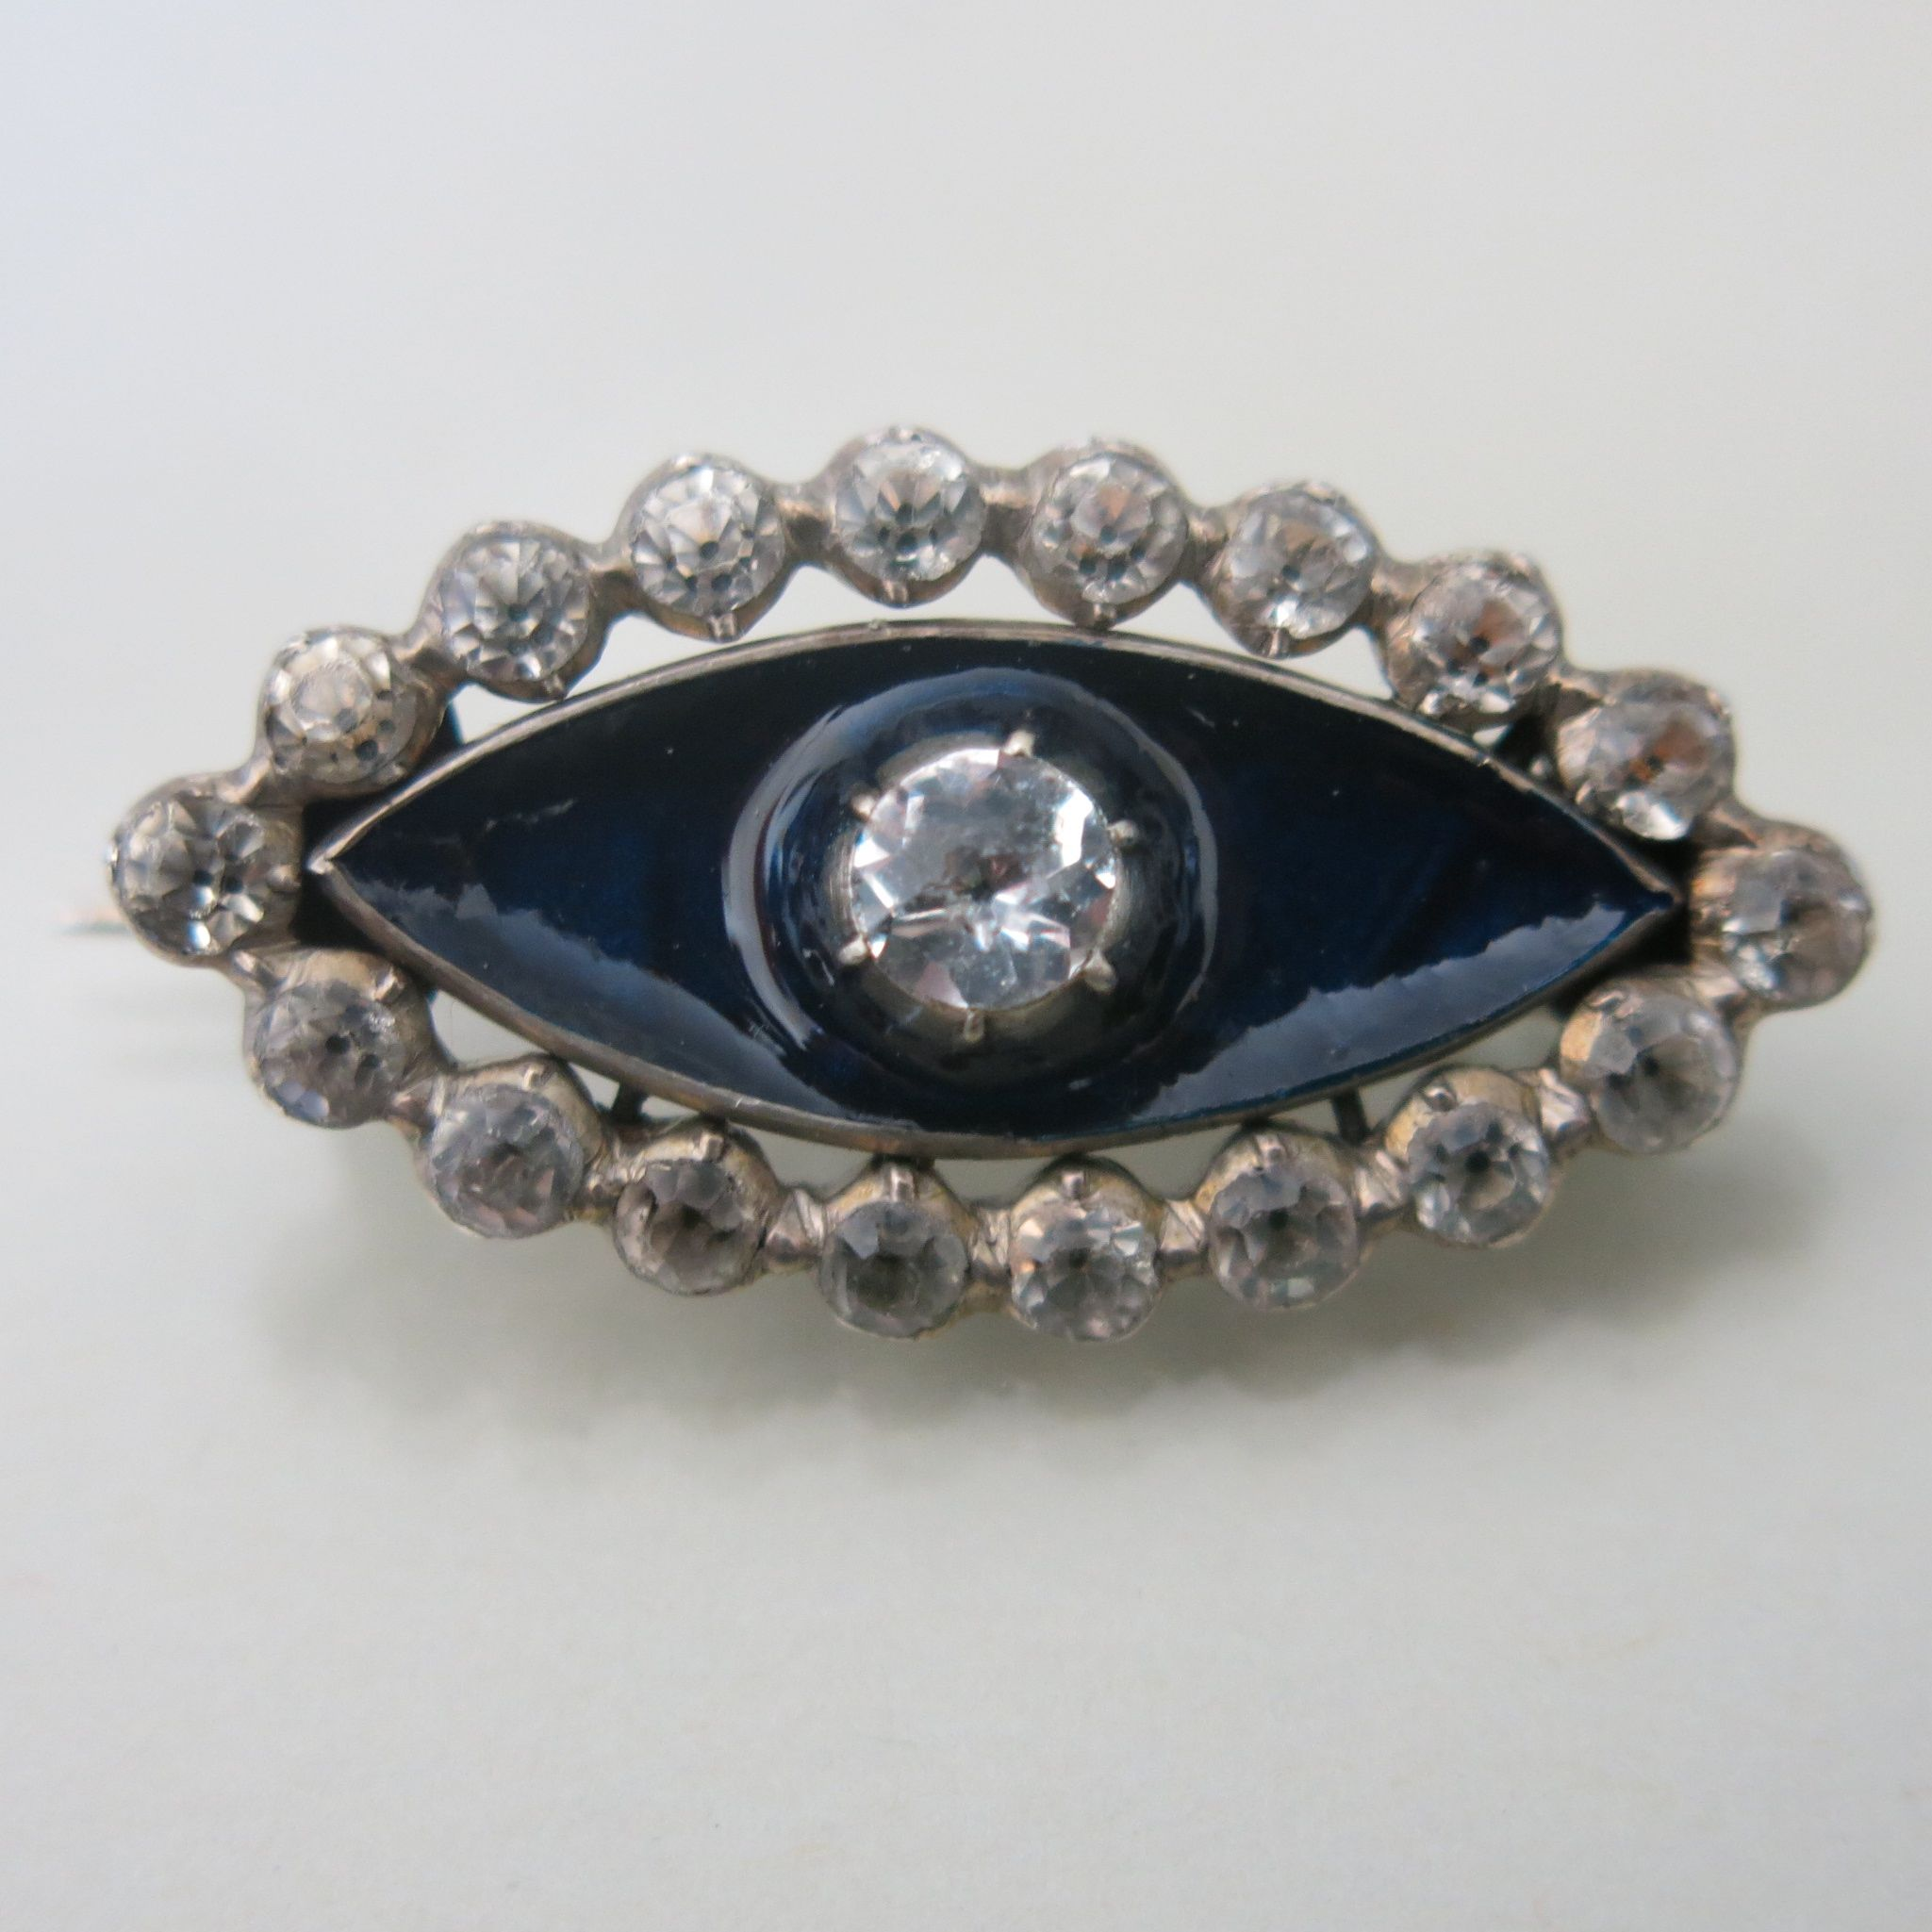 jodyelizabeth eye by art creepy sculpture deviantart green brooch on